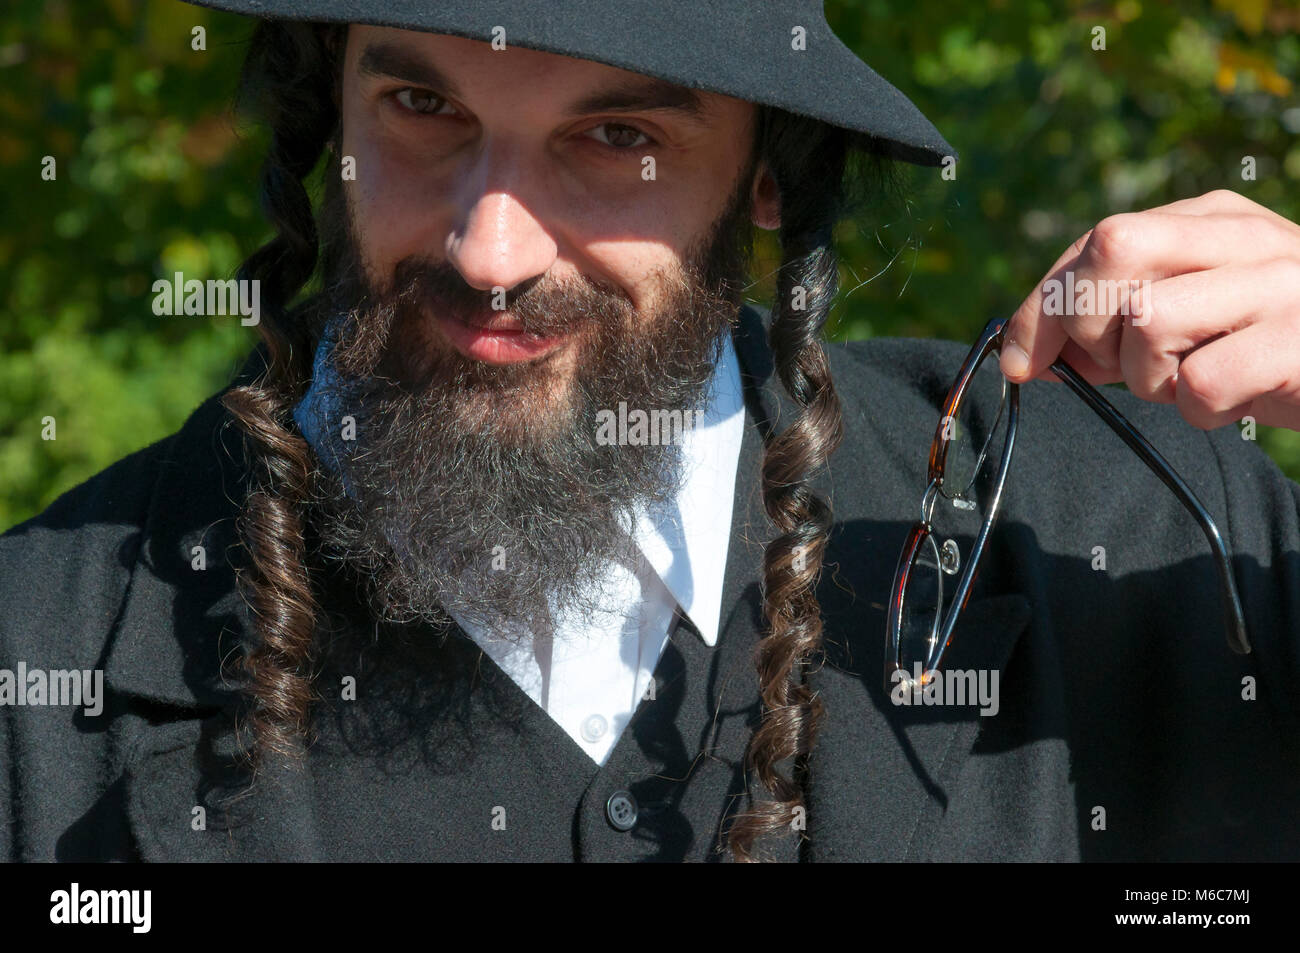 dbdab0918db Outdoor sunny bright portrait of a smiling young traditional orthodox  Jewish man with black beard